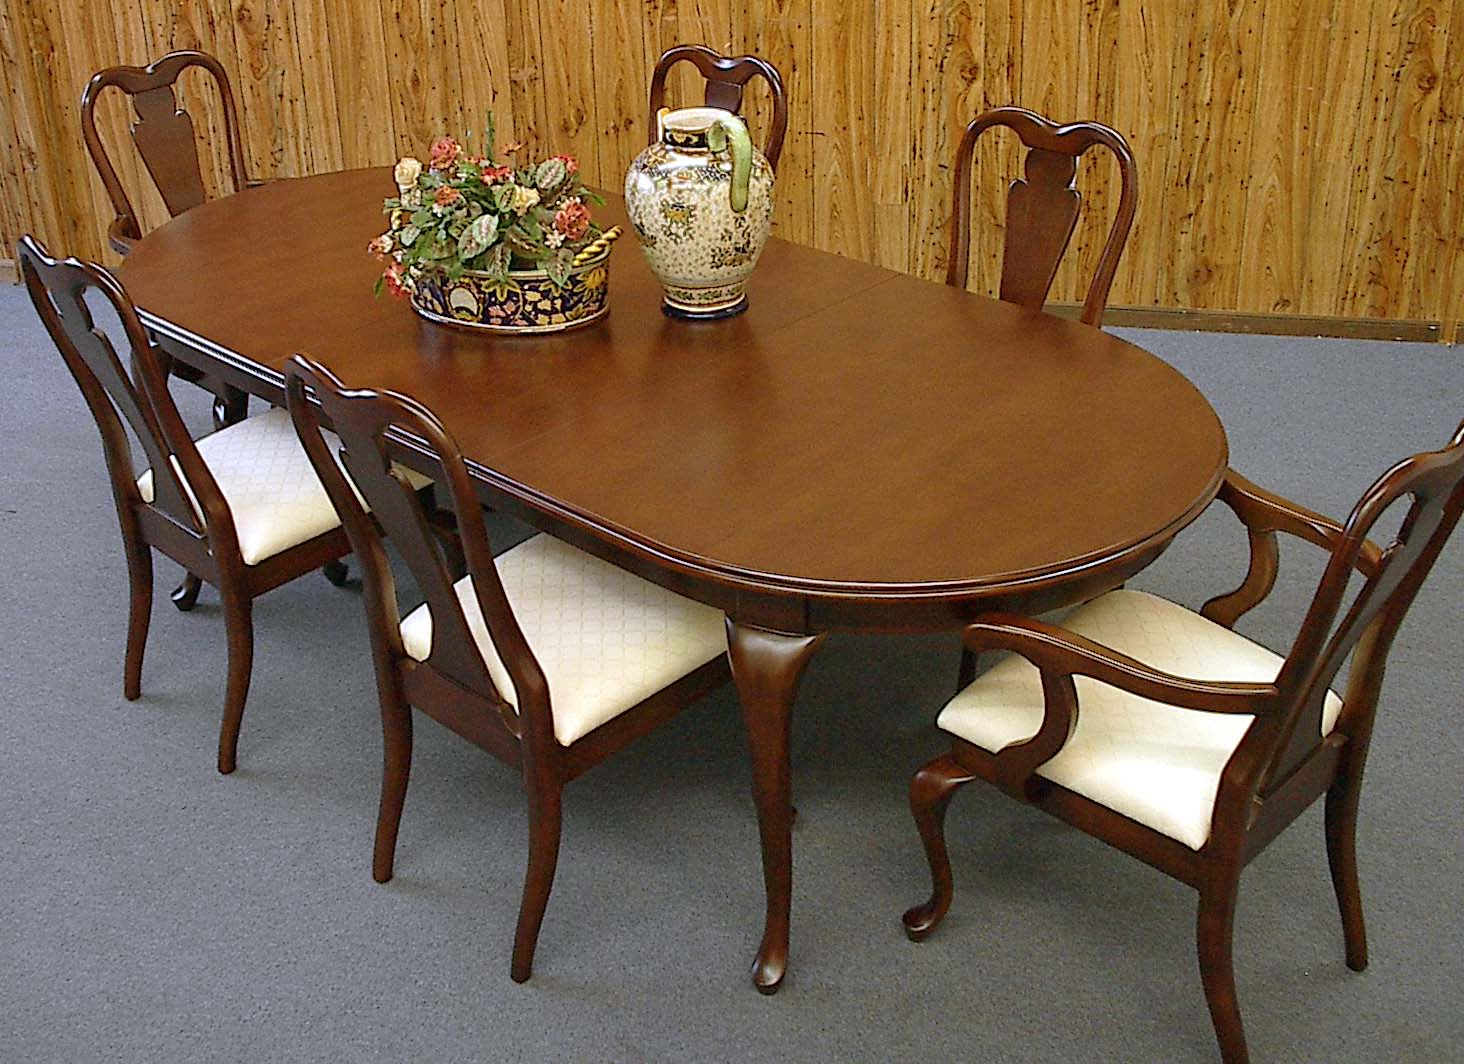 7 Piece 8ft Queen Anne Mahogany Dining Table and Chair Set  : fullview1exp from www.ebay.com size 1464 x 1064 jpeg 198kB